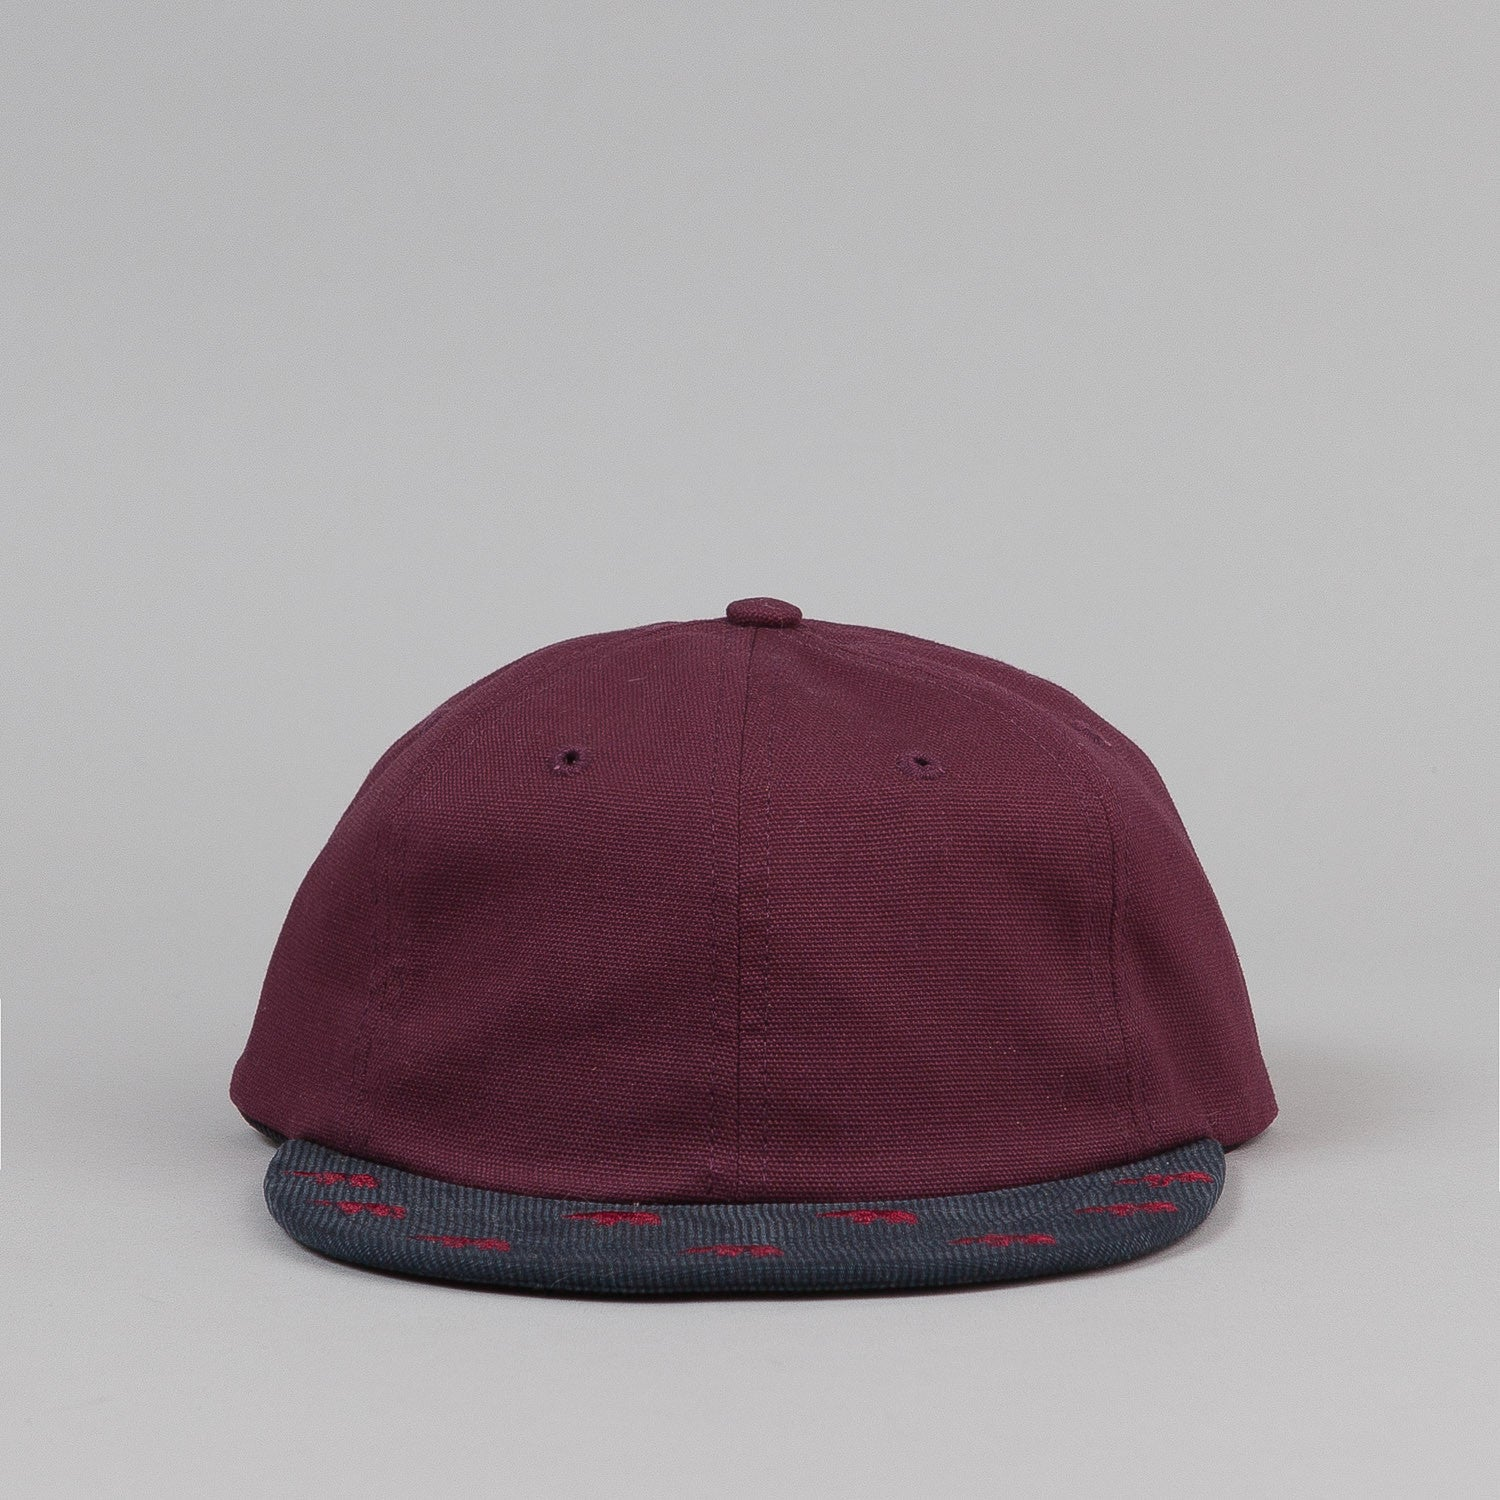 Belief Arctic 6 Panel Cap - Burgundy